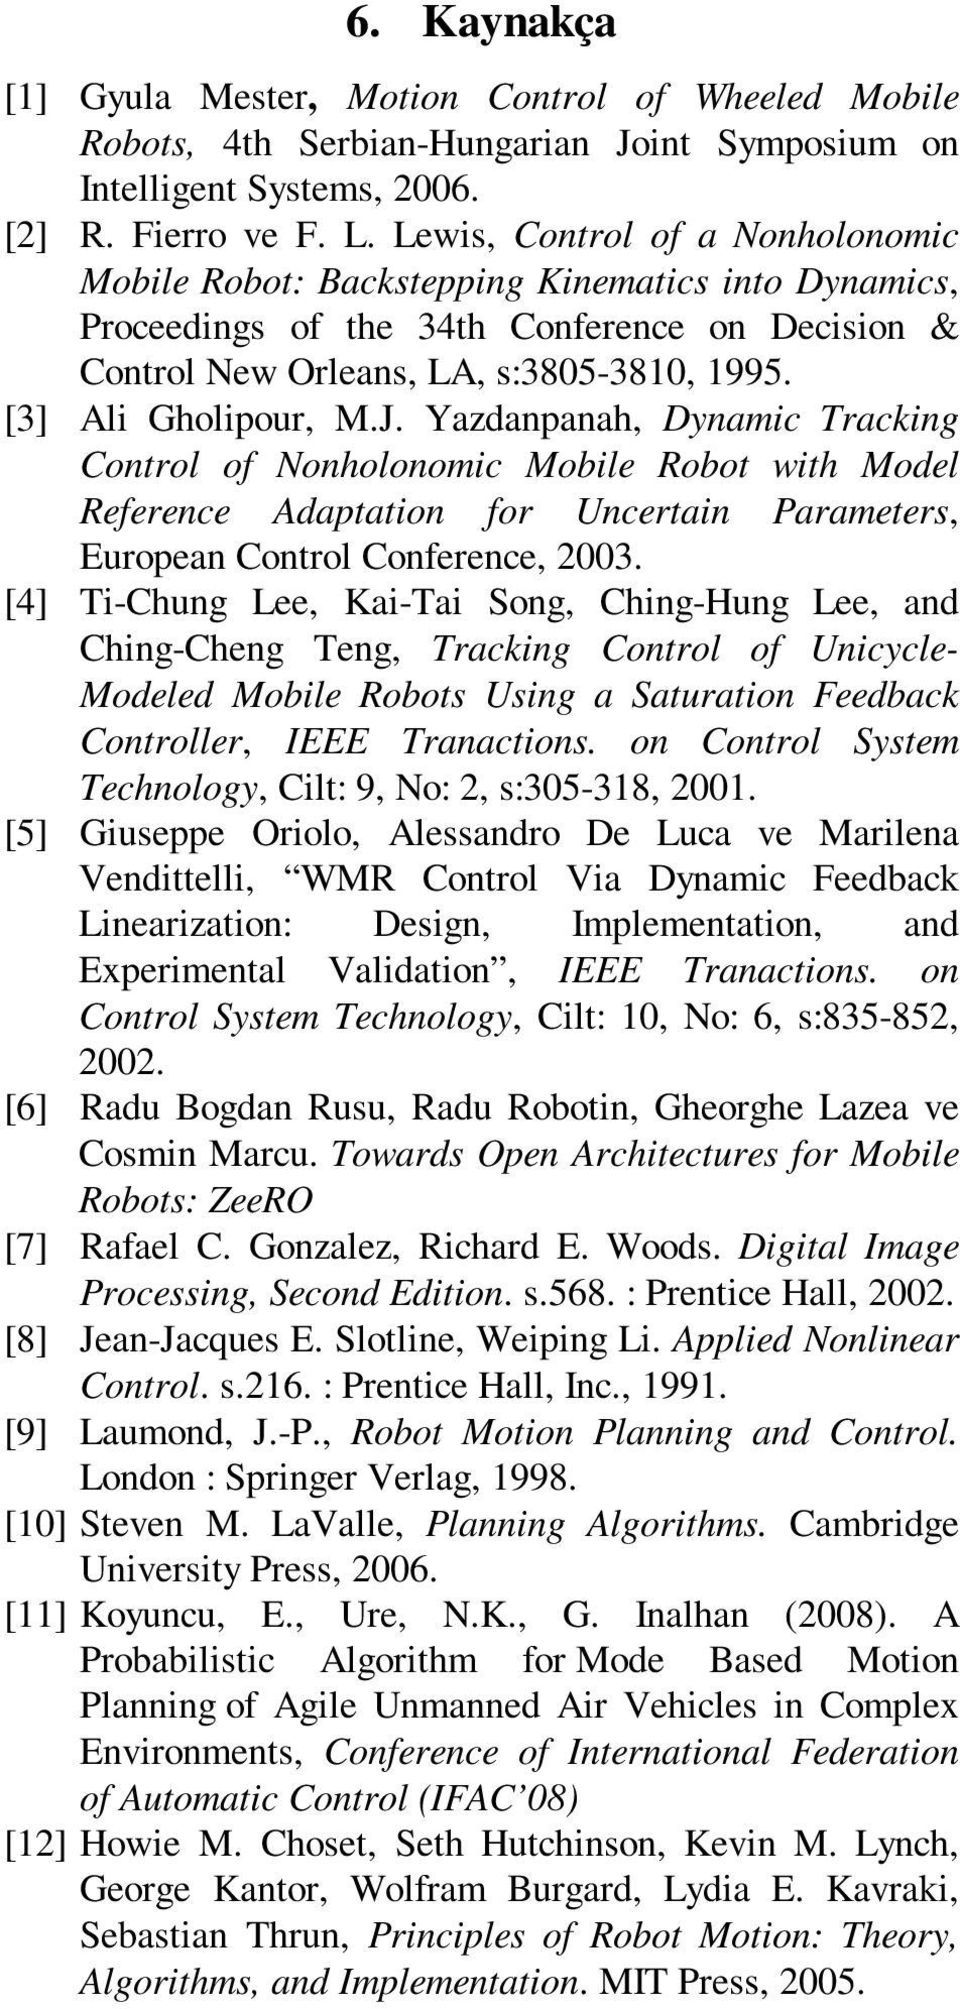 Yazanpanah, Dynamic Tracking Control of Nonholonomic Mobile obot with Moel eference Aaptation for Uncertain Parameters, European Control Conference, 2003.